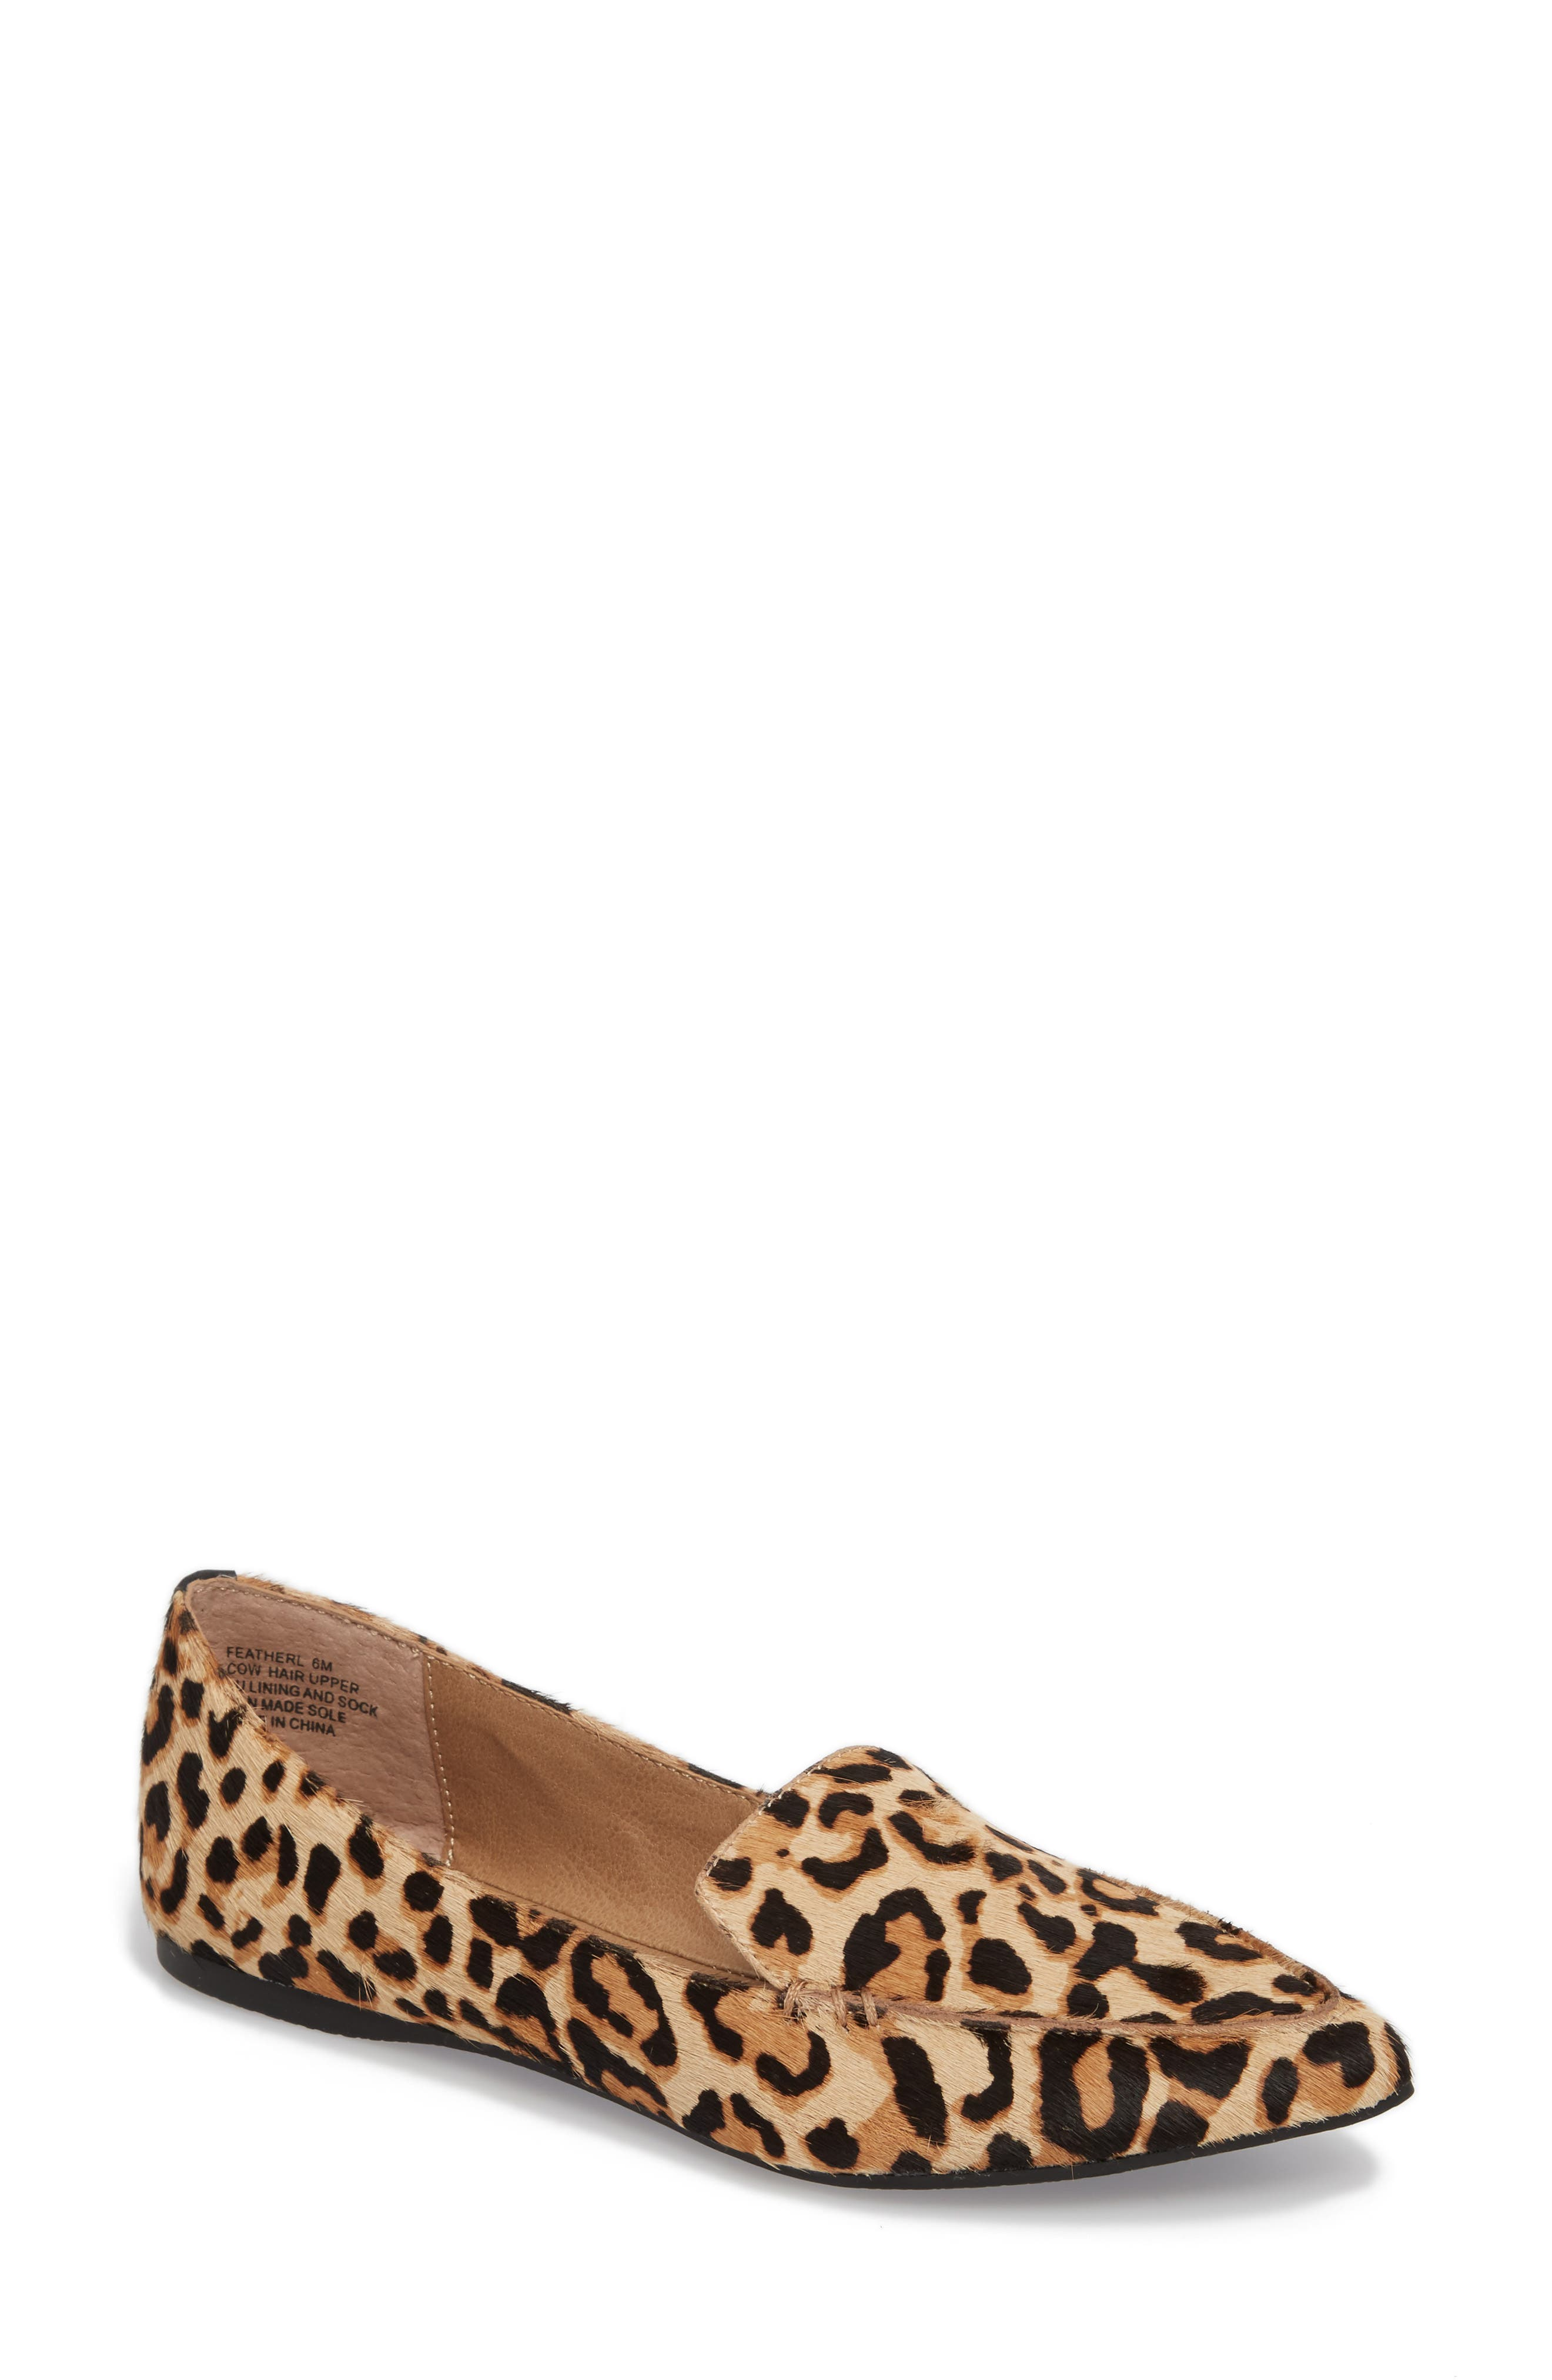 STEVE MADDEN, Feather-L Genuine Calf Hair Loafer Flat, Main thumbnail 1, color, LEOPARD